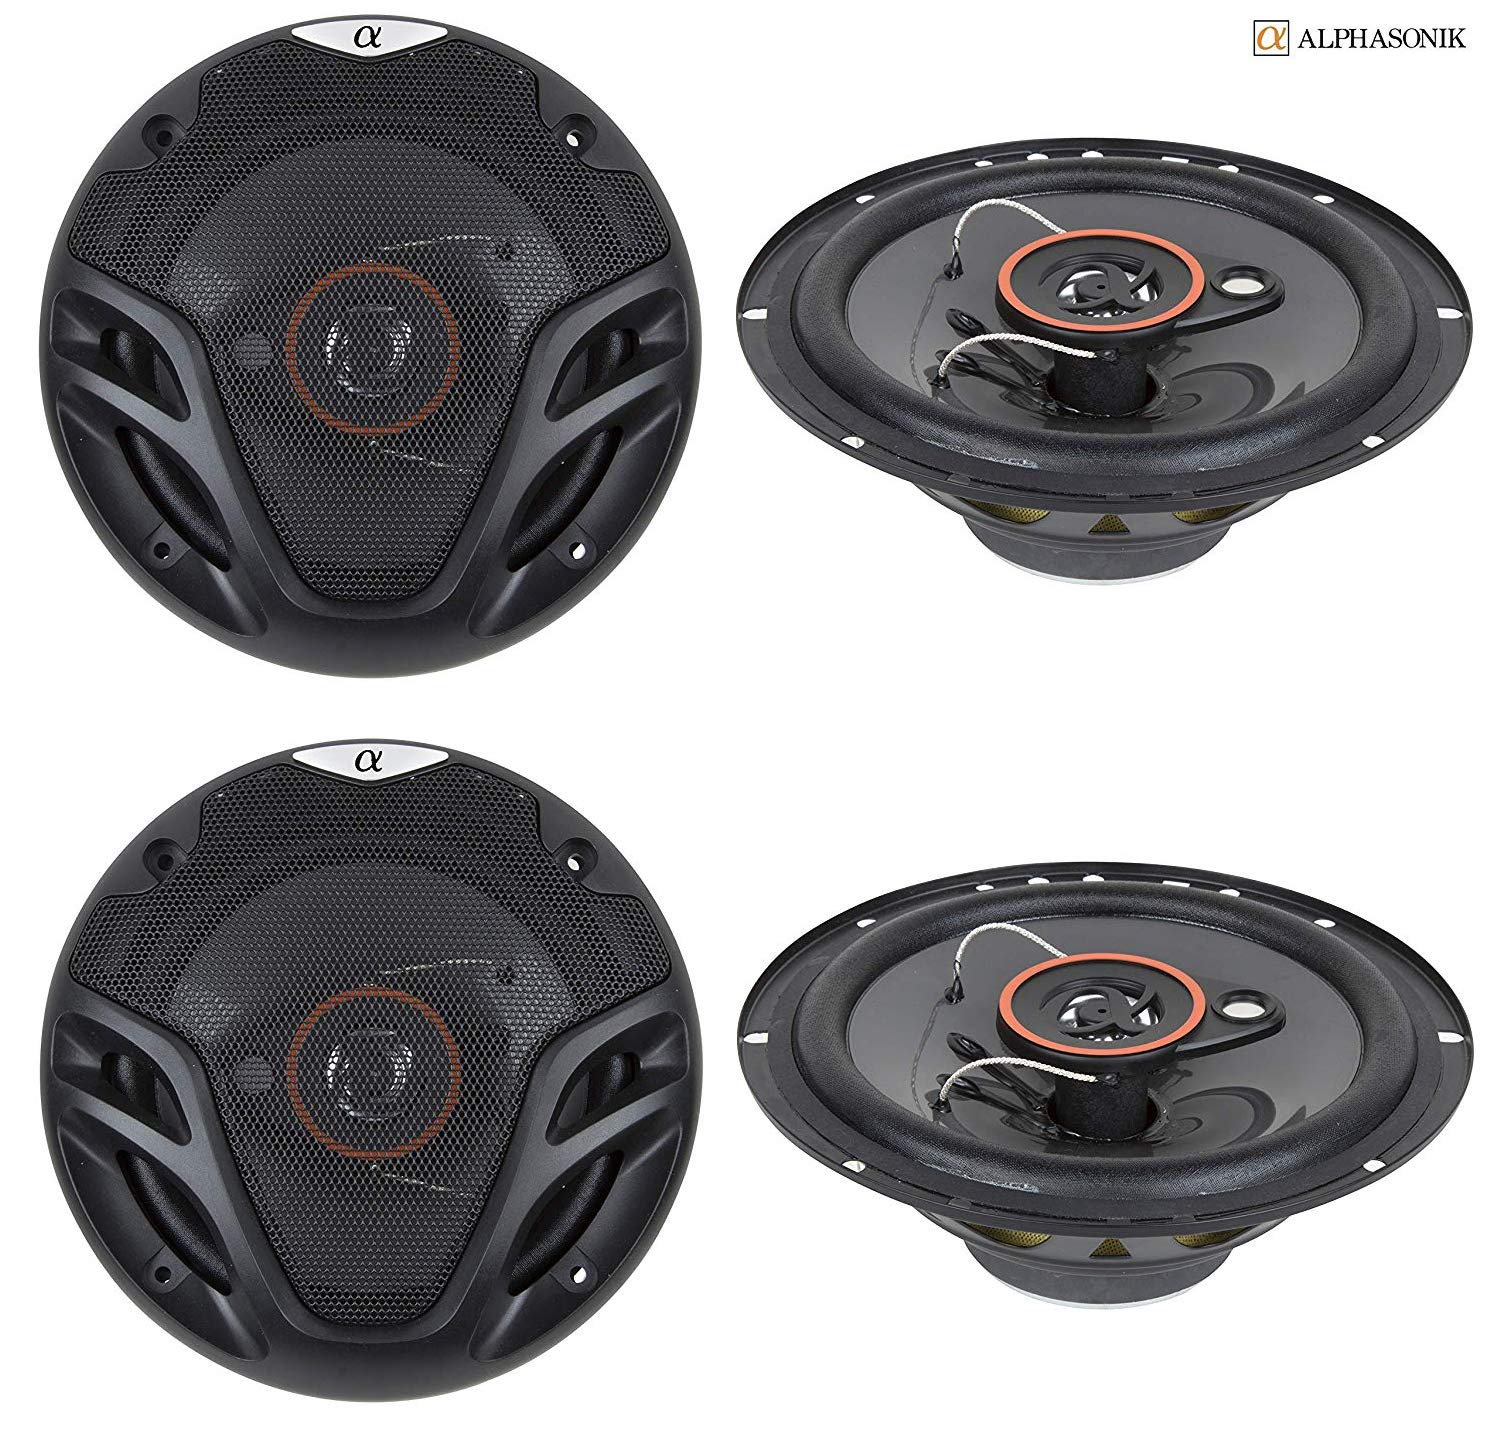 4 New (2 Pairs) Alphasonik AS26 6.5 inch 350 Watts Max 3-Way Car Audio Full Range Coaxial Speakers with Universal Mounting Holes for Easy Installation and Grills Included